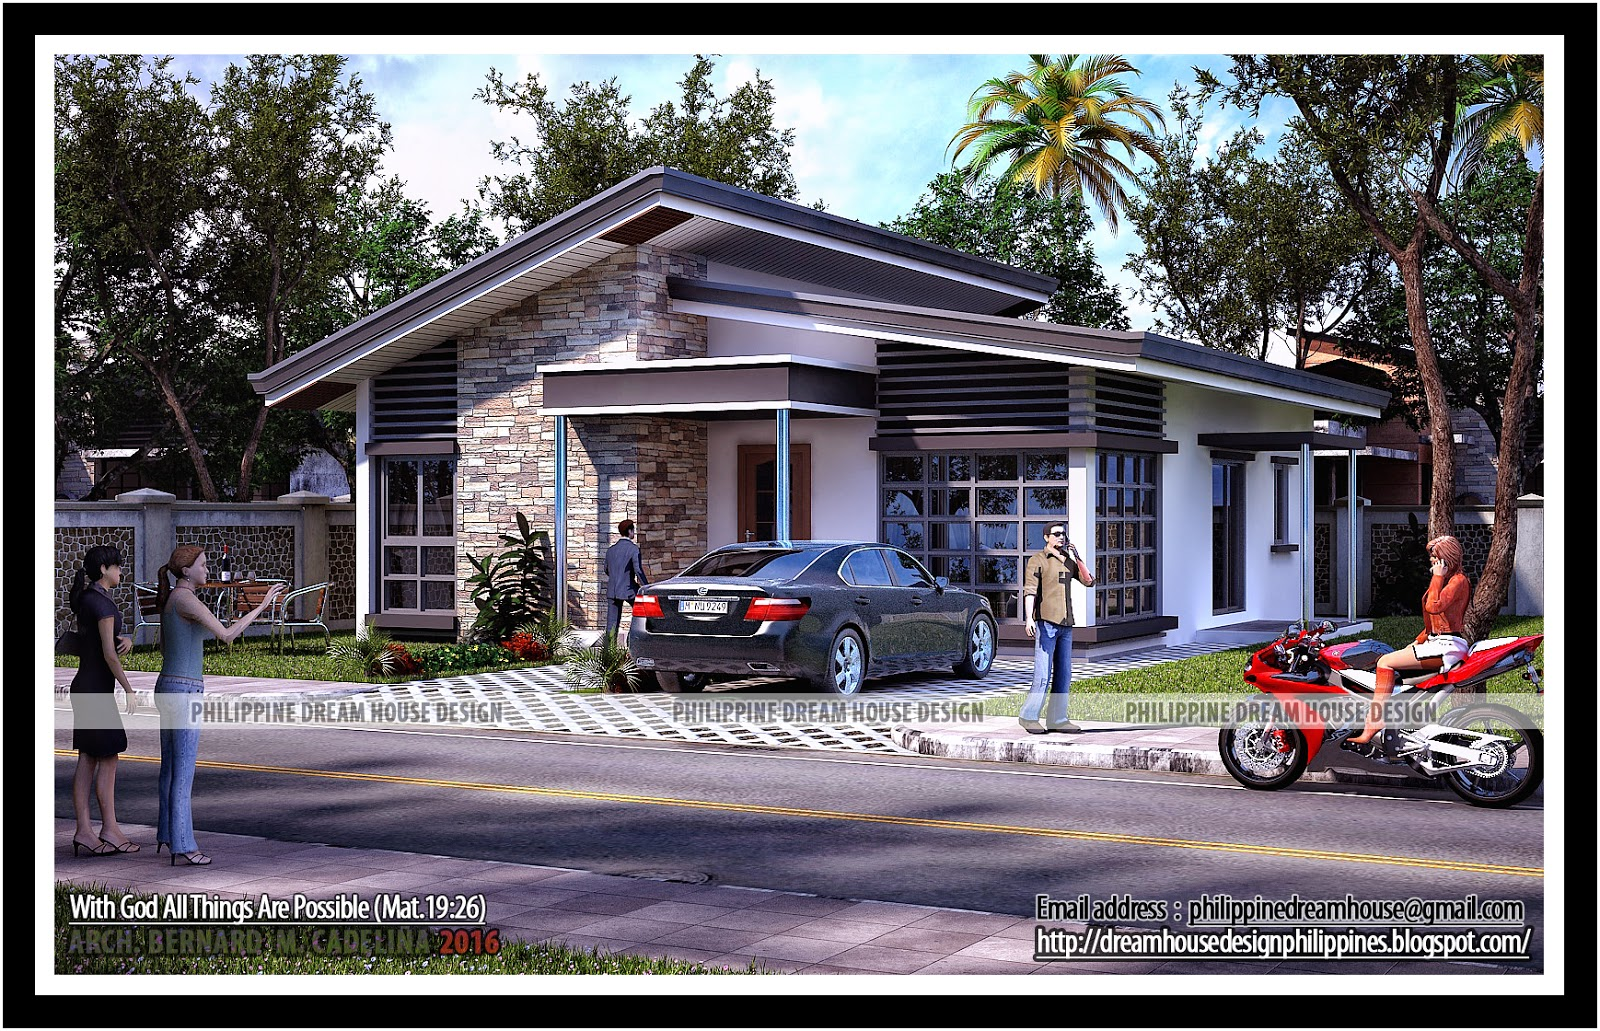 Philippine dream house design Classic bungalow house plans